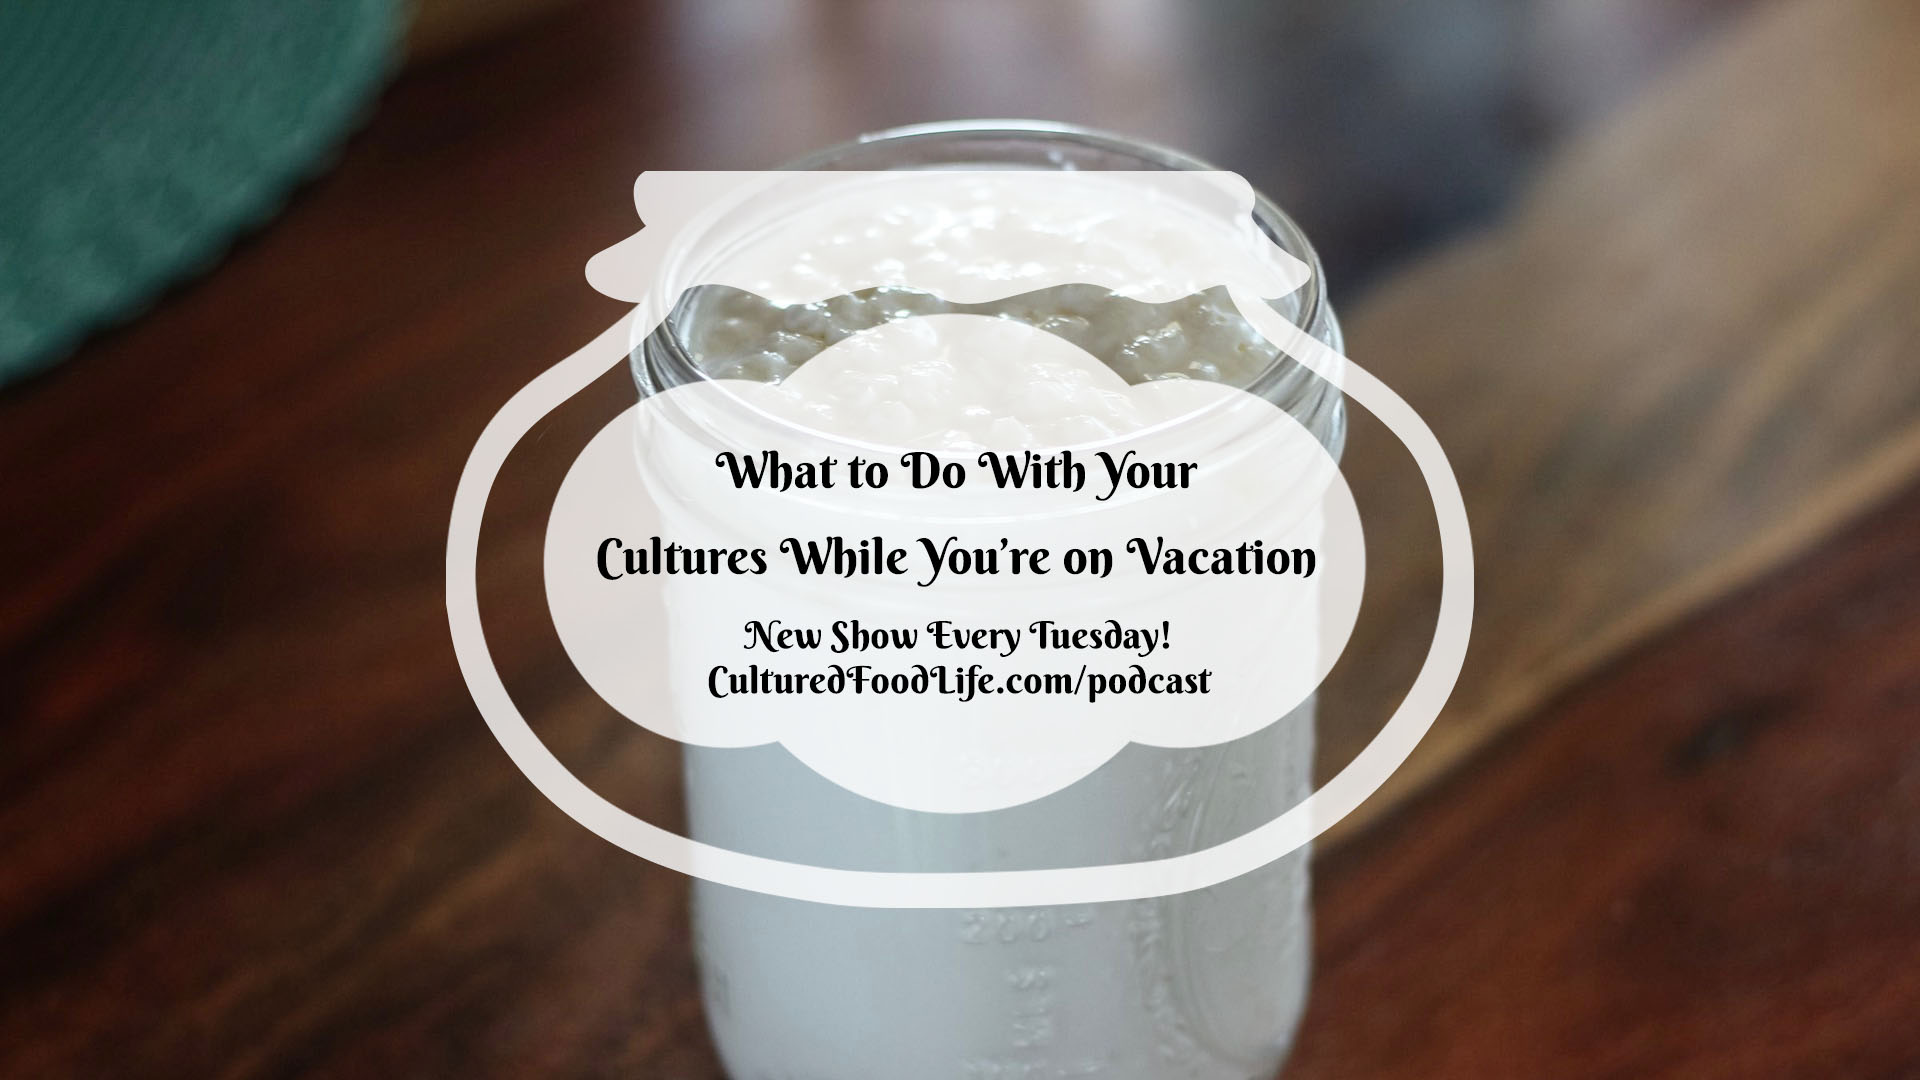 What to Do With Your Cultures While You're on Vacation Full